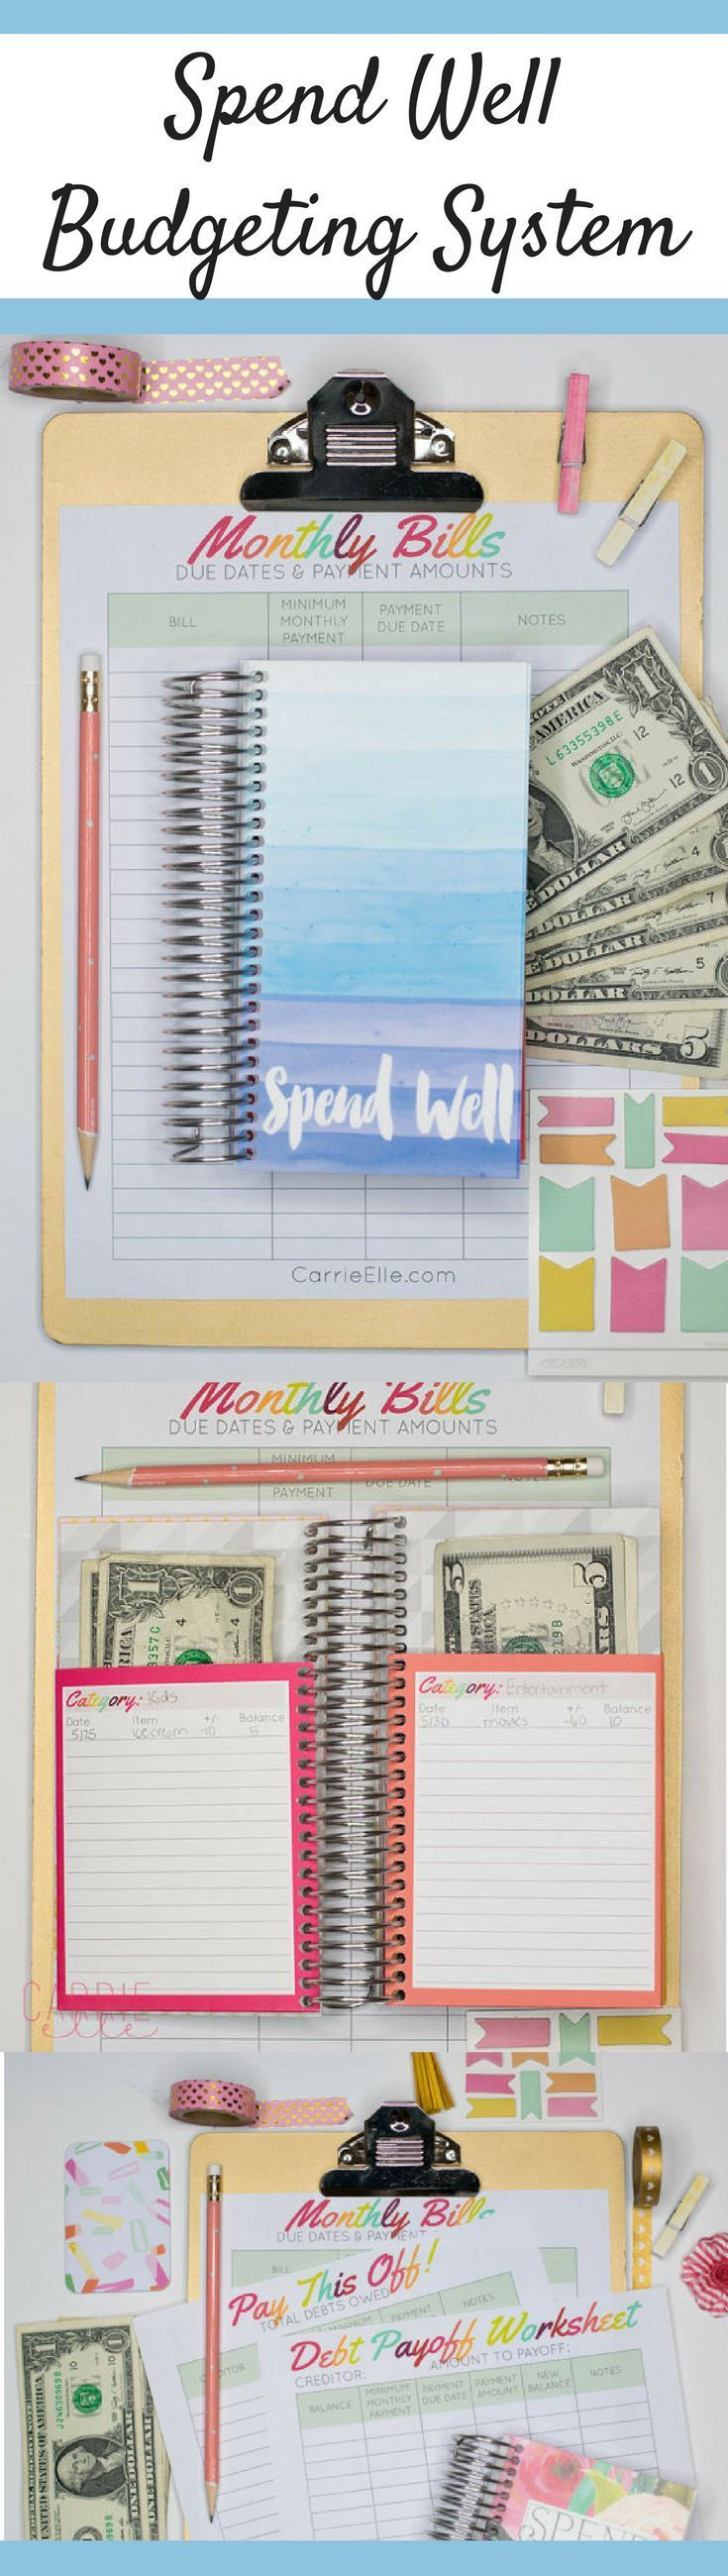 Spend Well Budgeting System | Cash Envelope System | Budgeting for ...